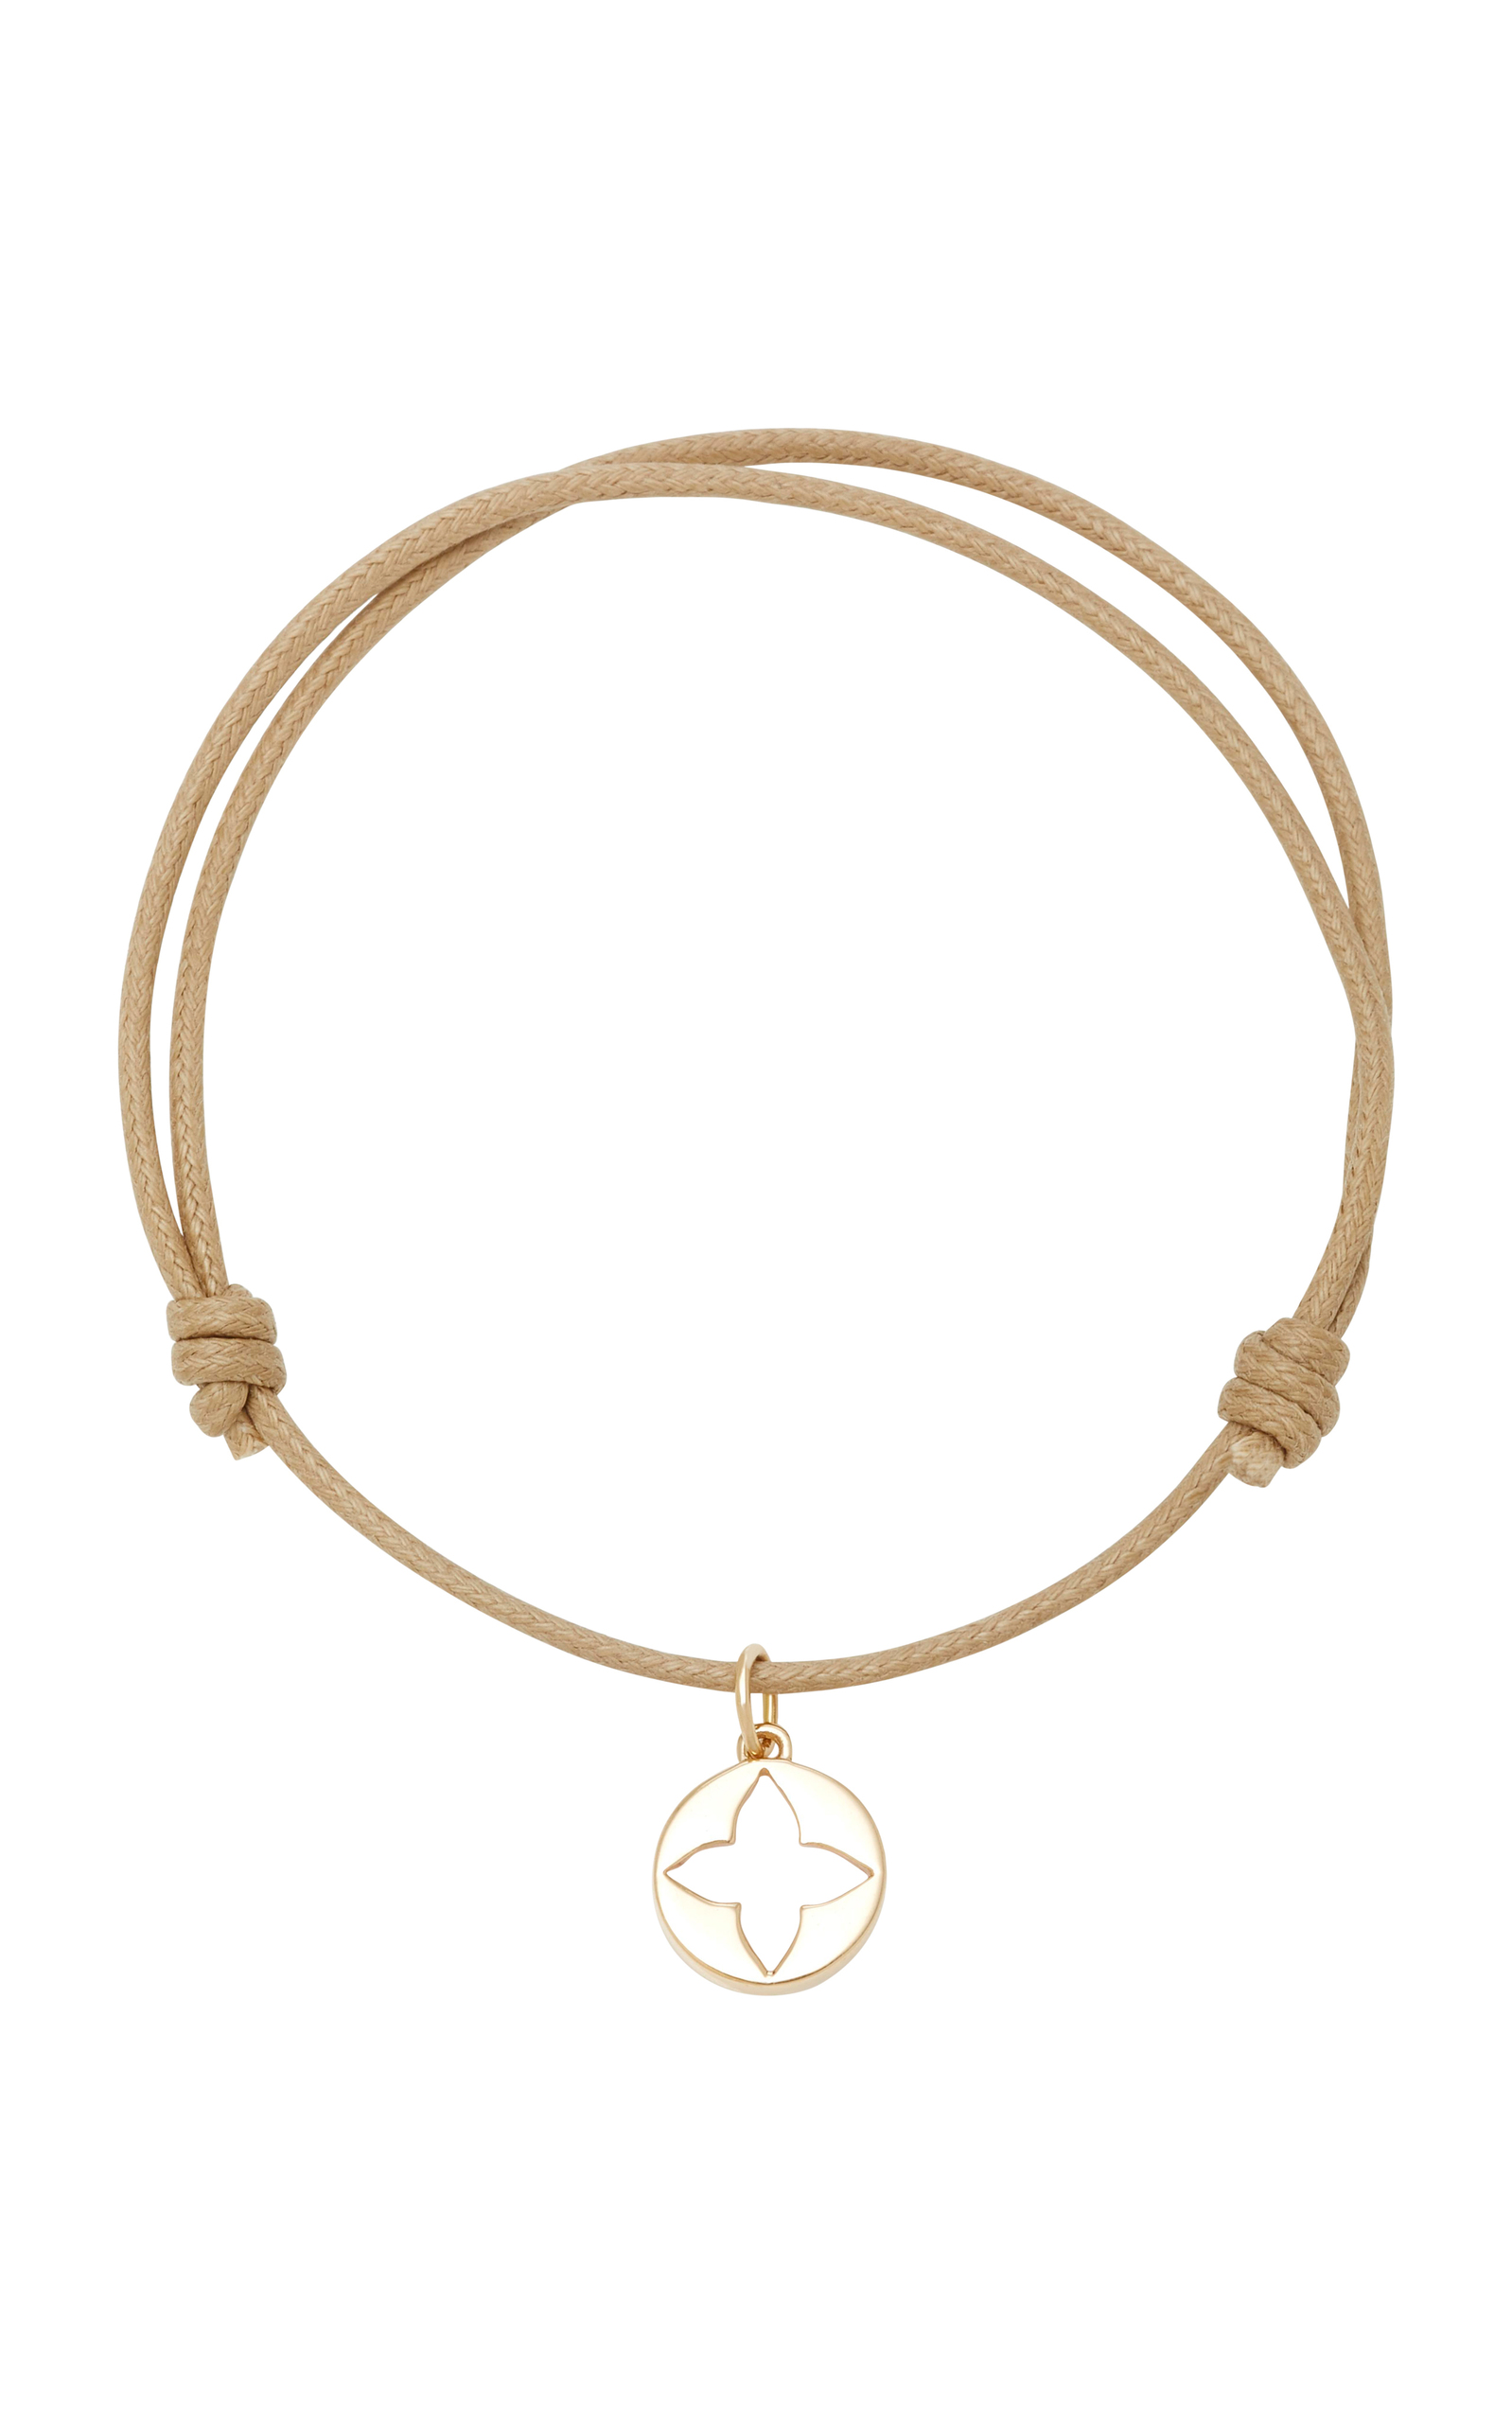 WITH LOVE DARLING ROSE GEO 18K GOLD CORD BRACELET